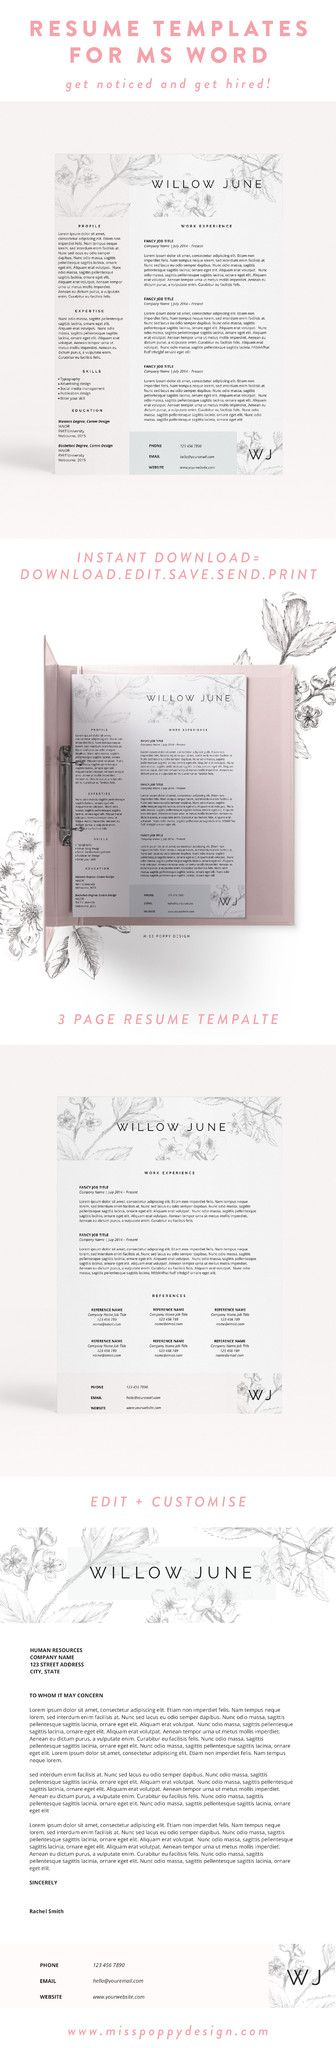 modern creative resume template cv template ms word instant download floral resume - Free Professional Resume Template